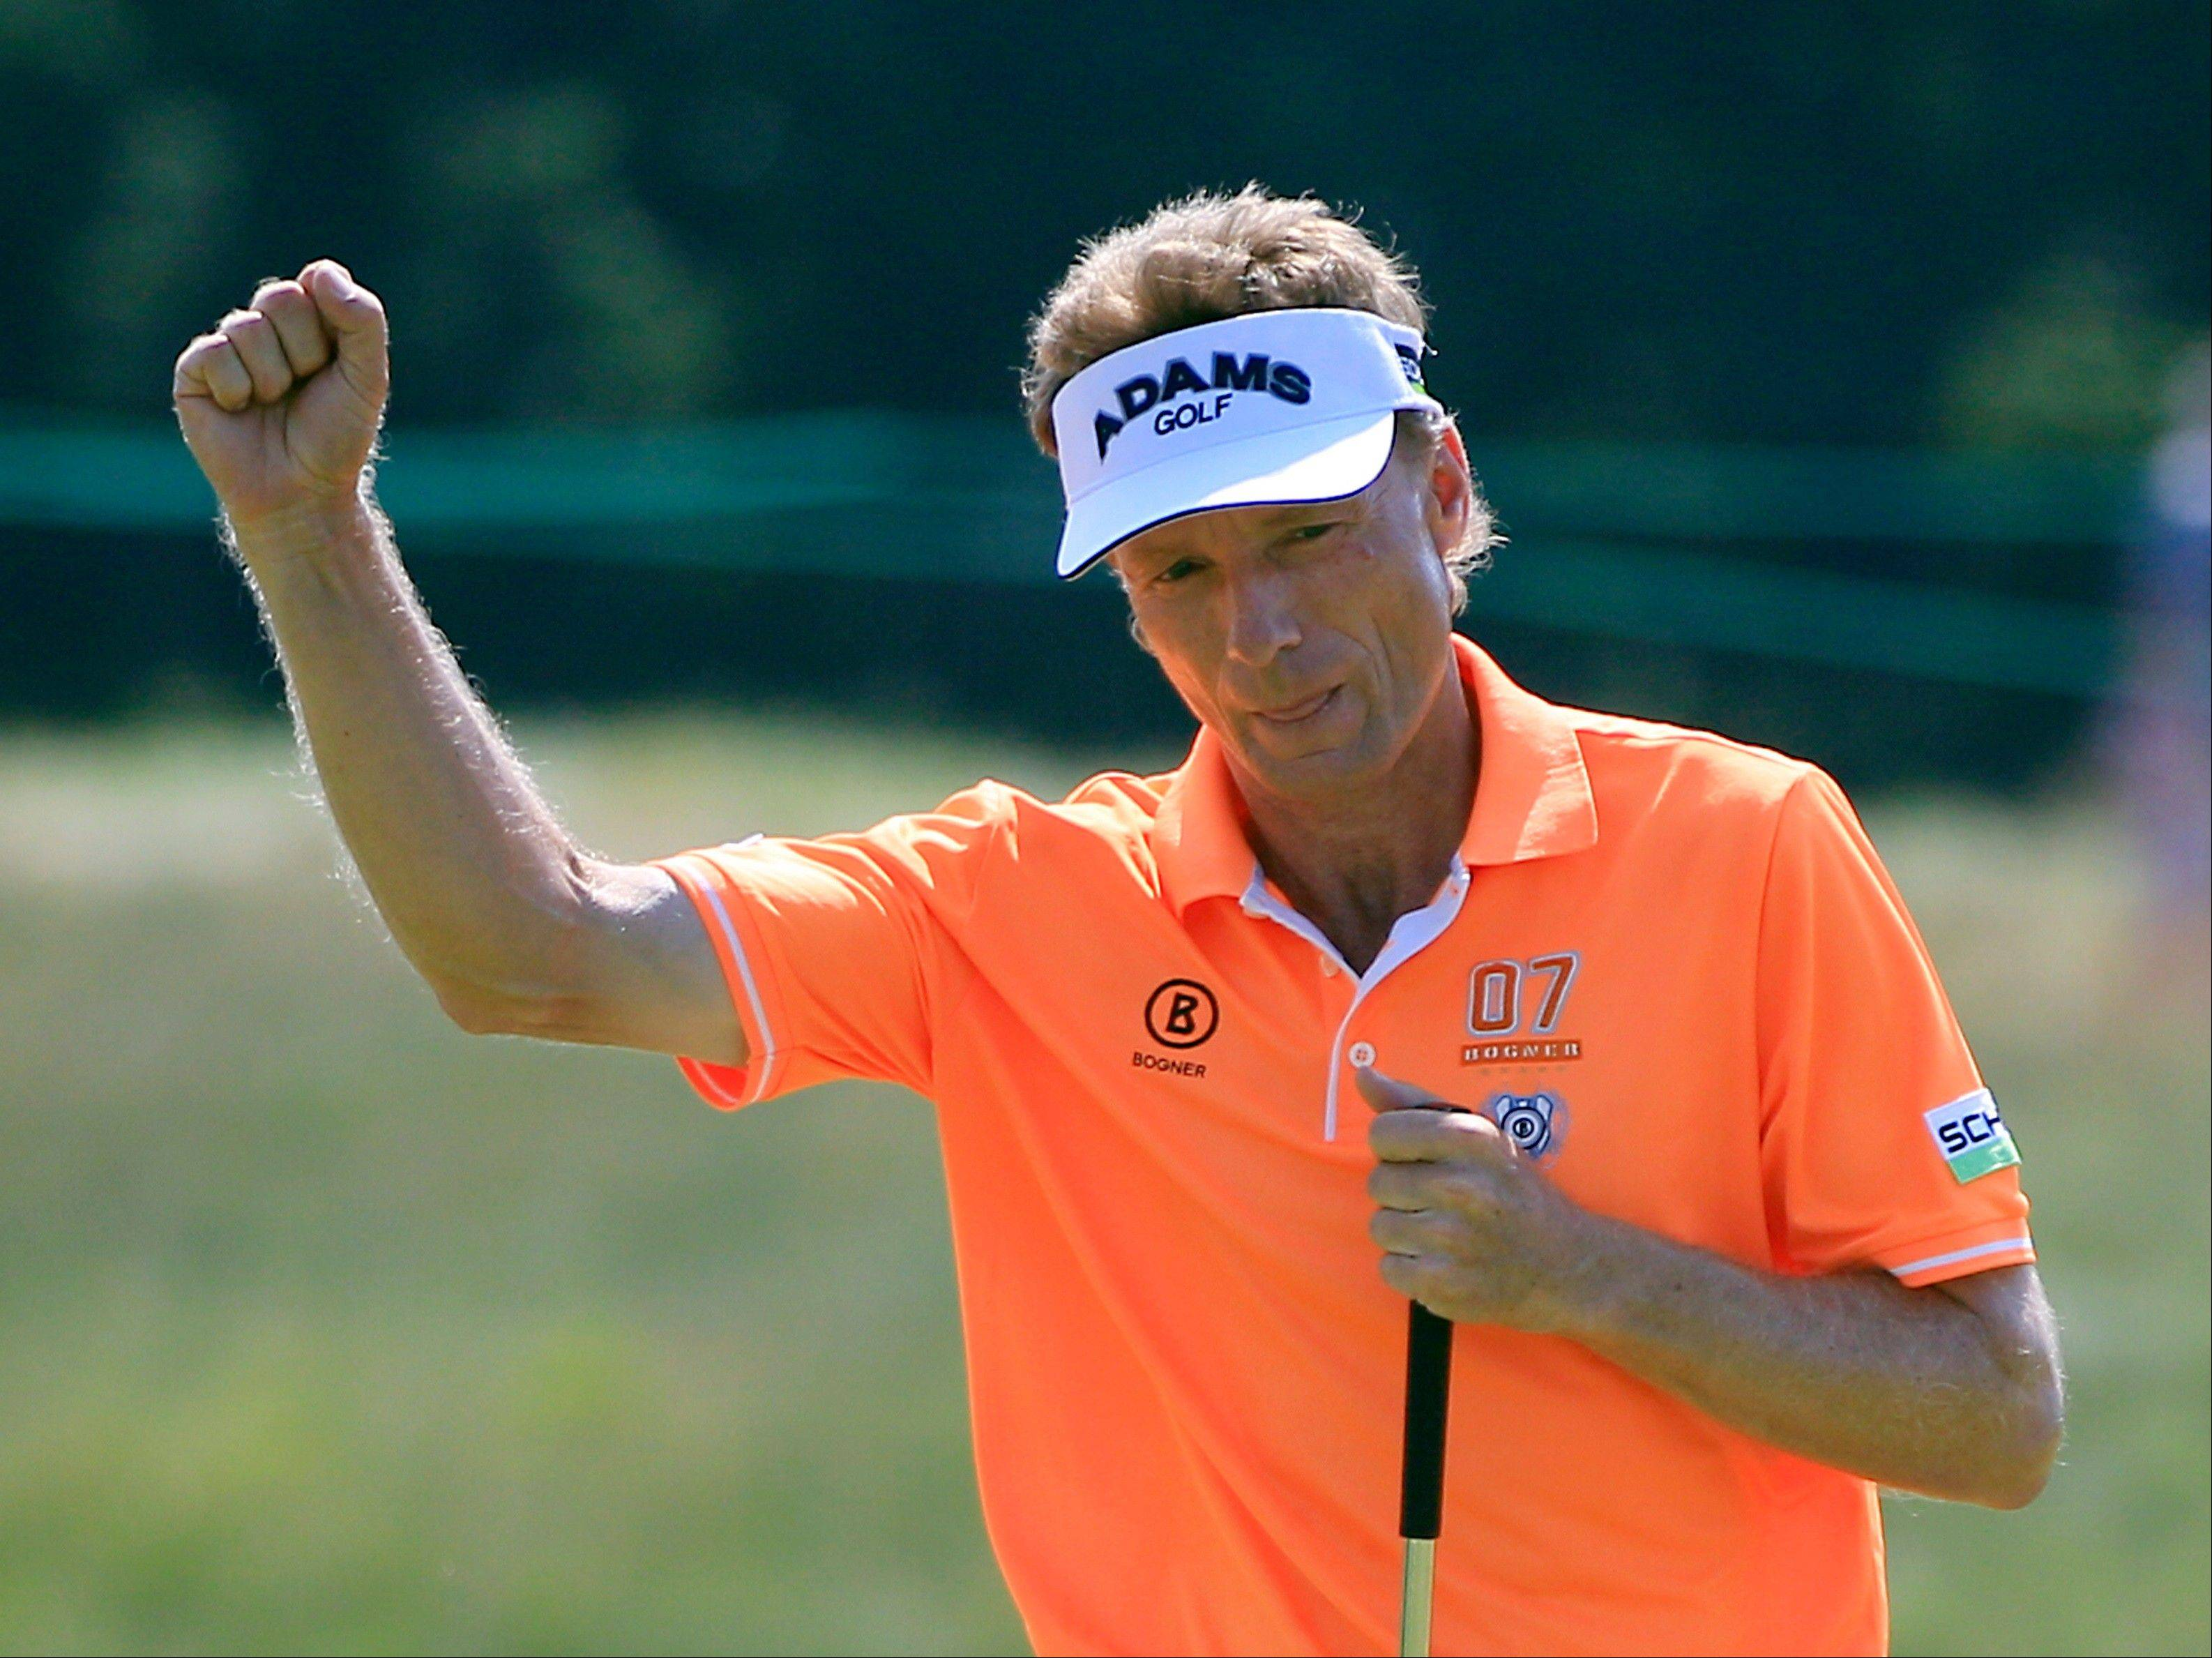 Bernhard Langer reacts after a birdie putt on the 15th hole Saturday during the third round at the U.S. Senior Open at Indianwood Golf and Country Club in Lake Orion, Mich.